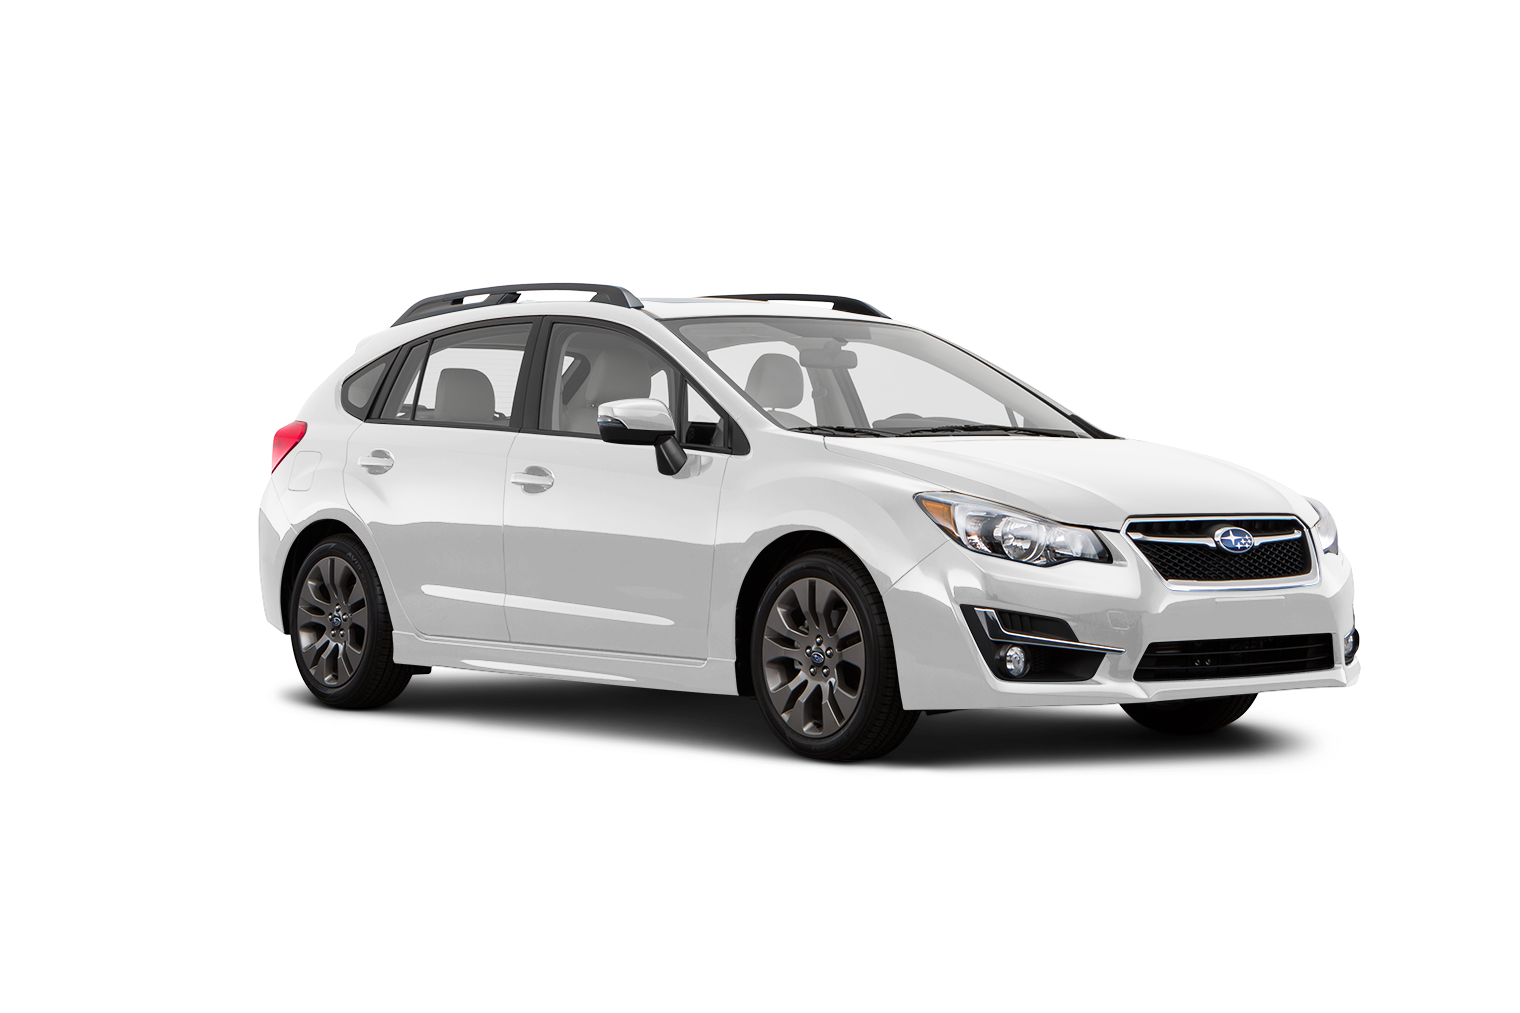 Build Your Own Subaru >> Build Your Own Subaru Impreza On The Official Site